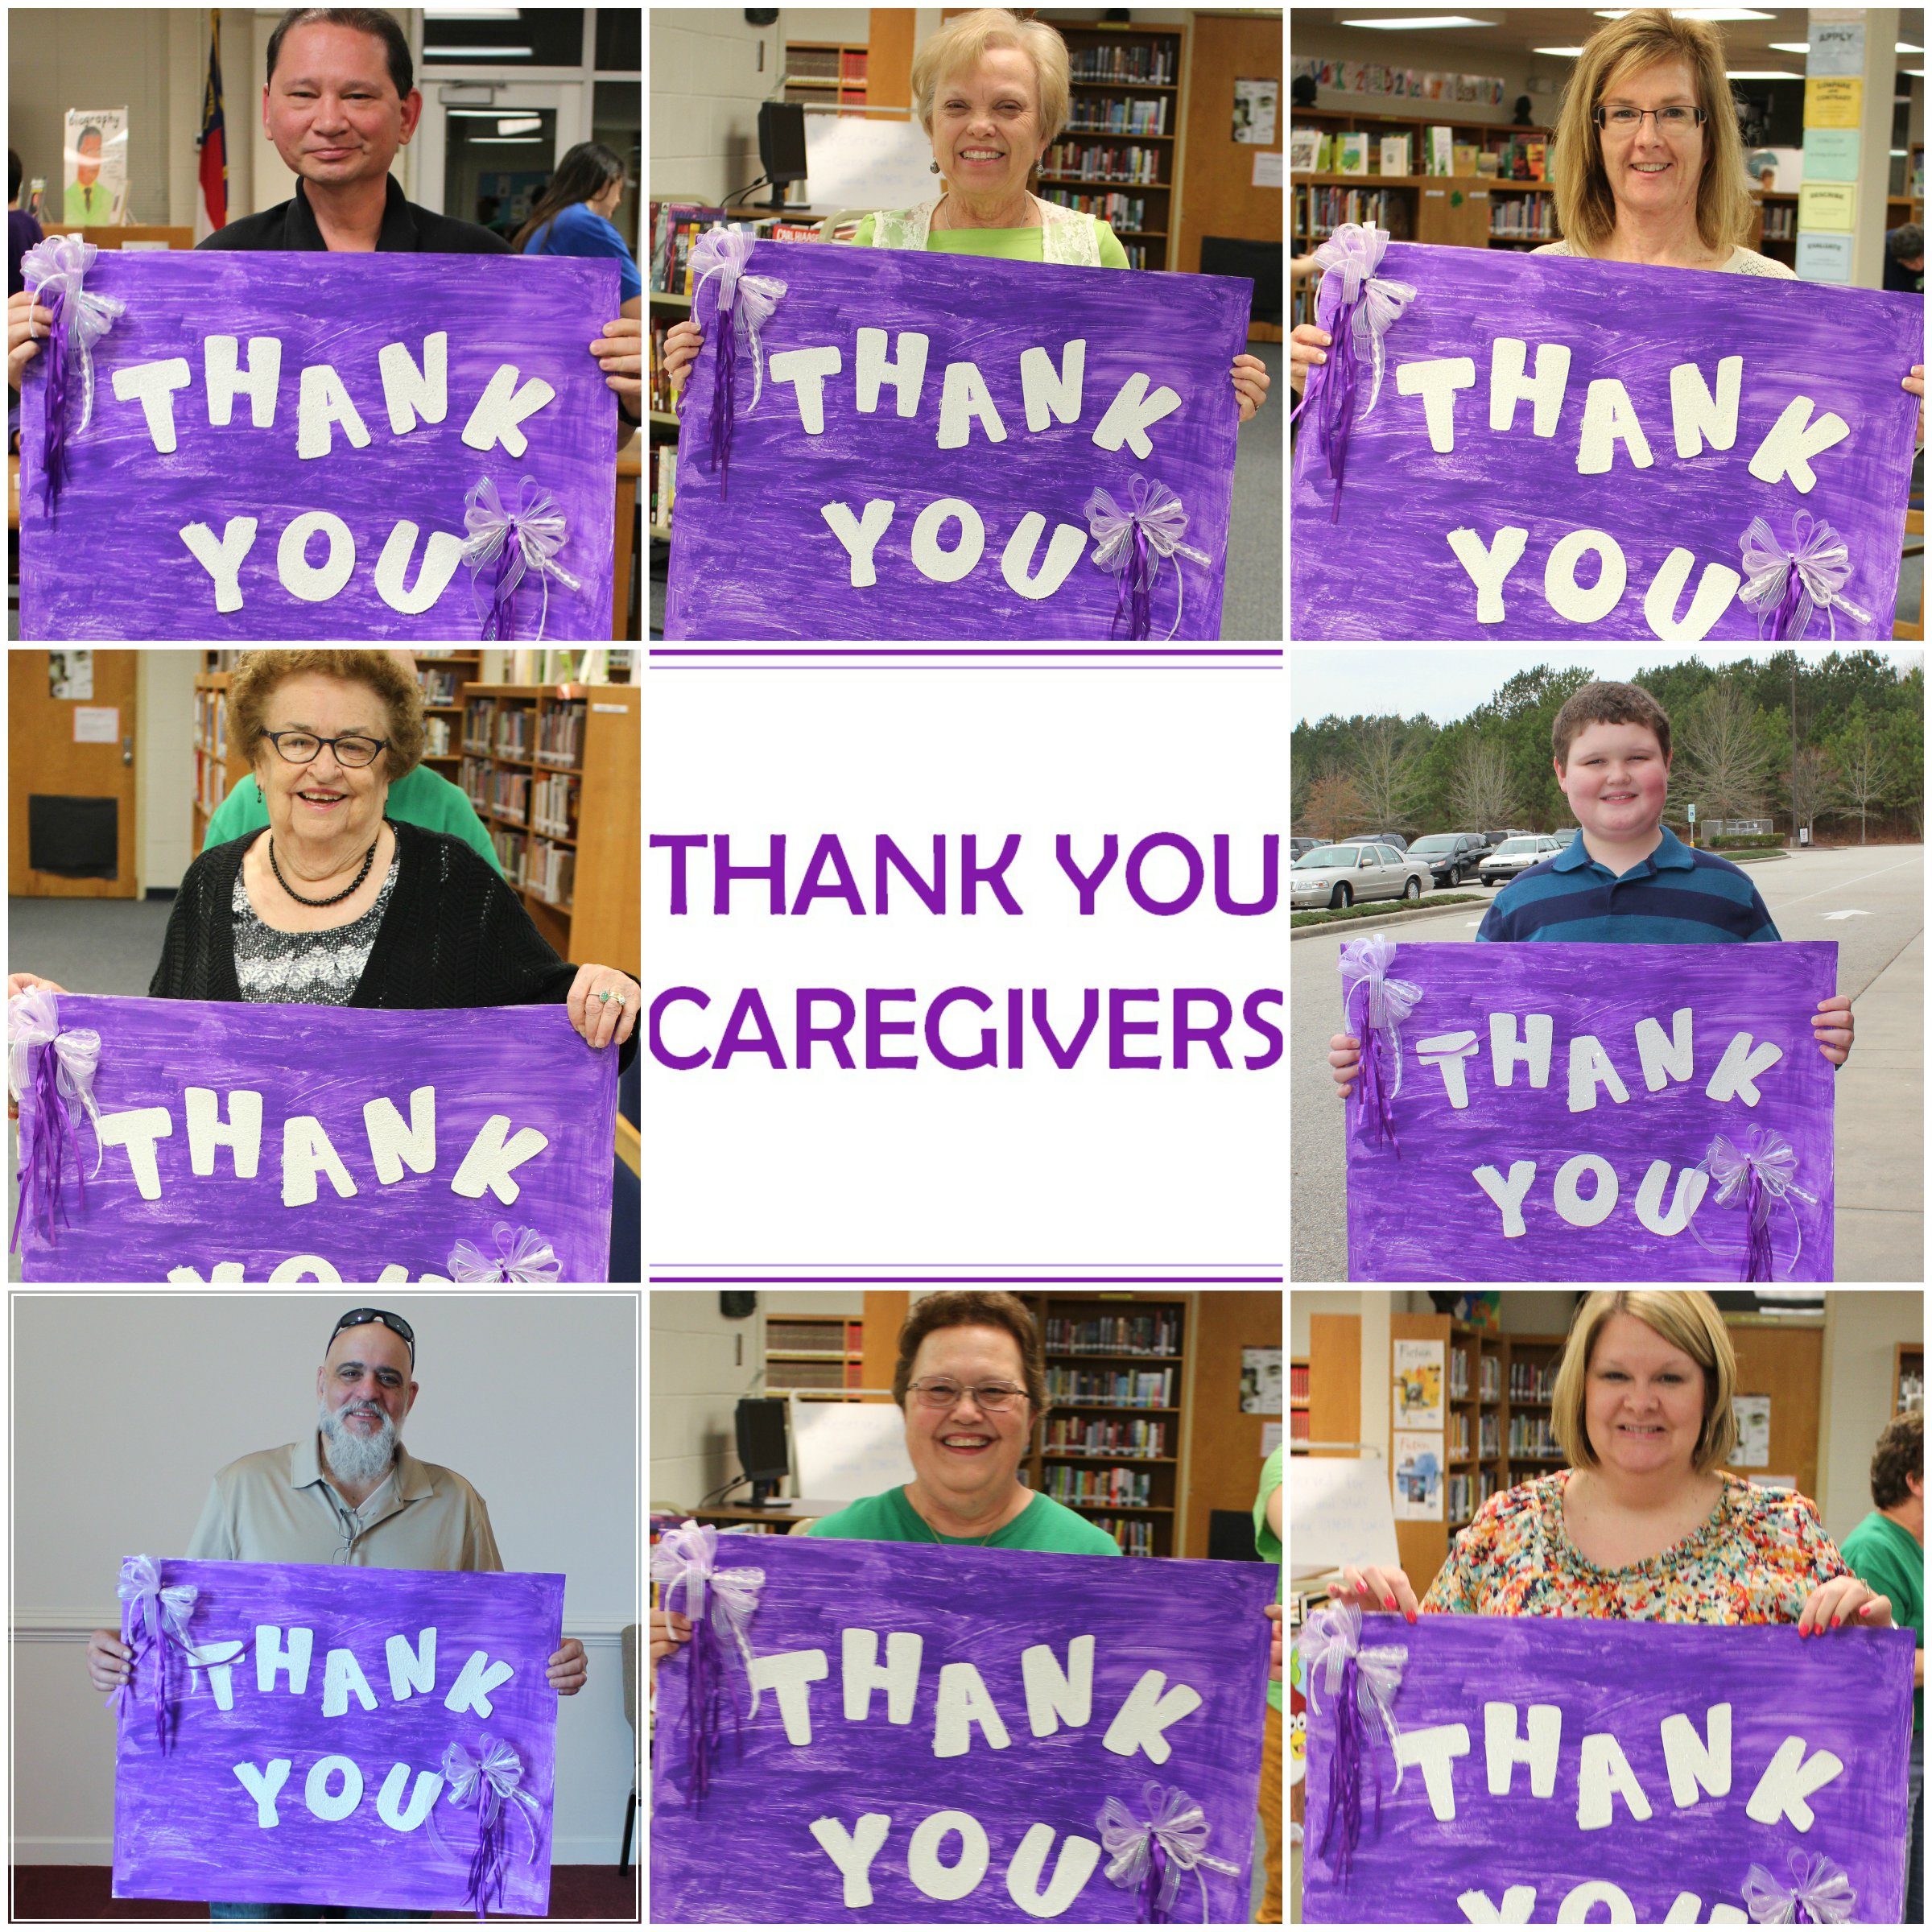 Caregiver Thank you